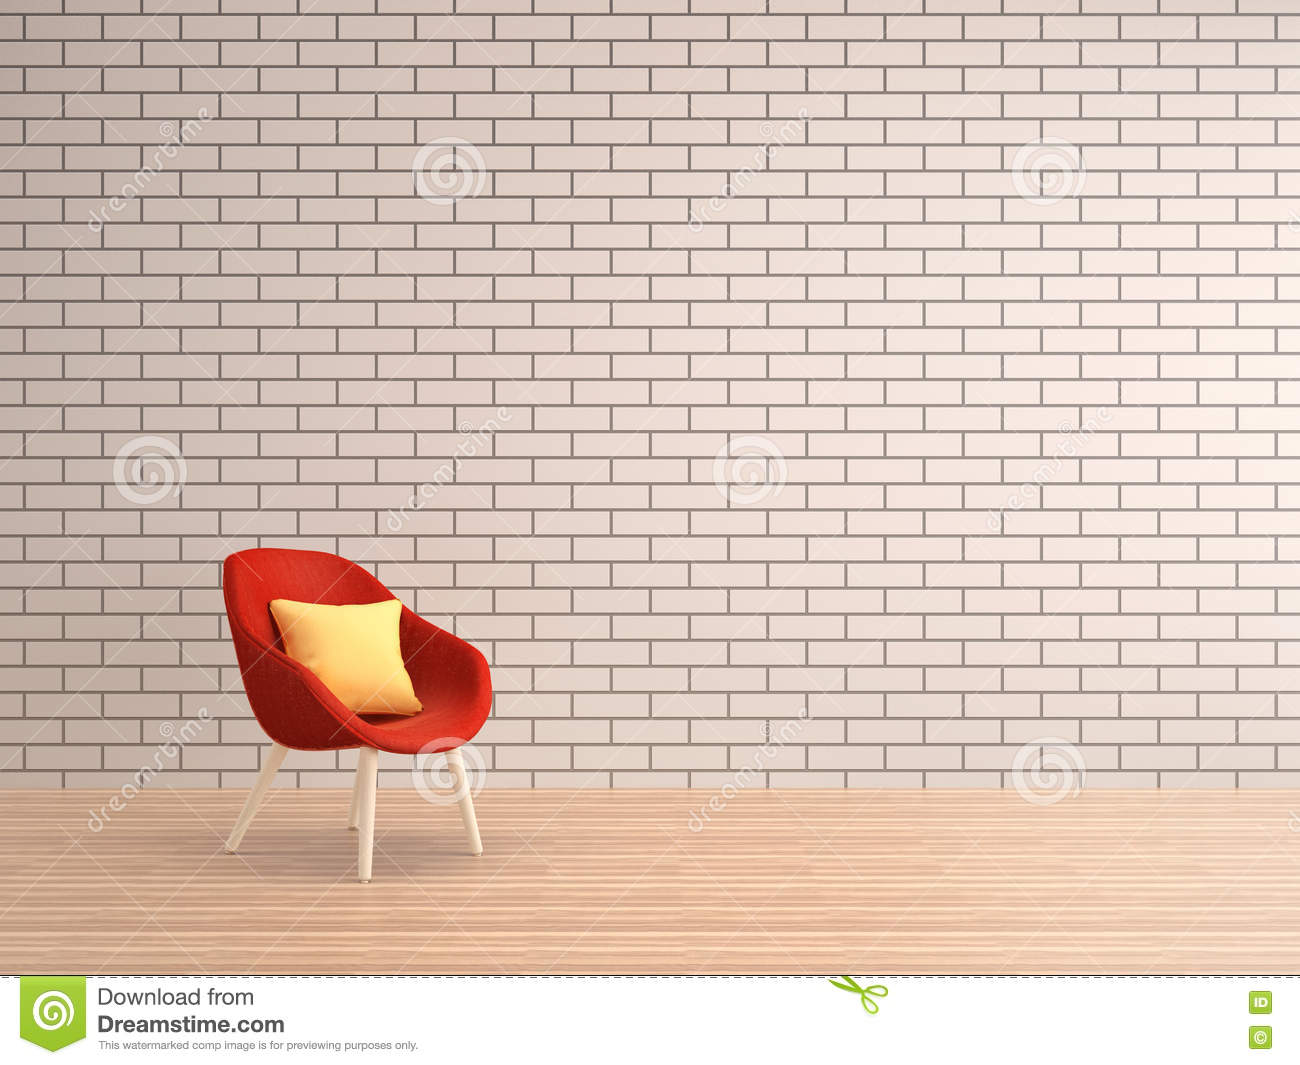 mur de briques blanc de salon avec le fauteuil rouge illustration stock image 75905849. Black Bedroom Furniture Sets. Home Design Ideas